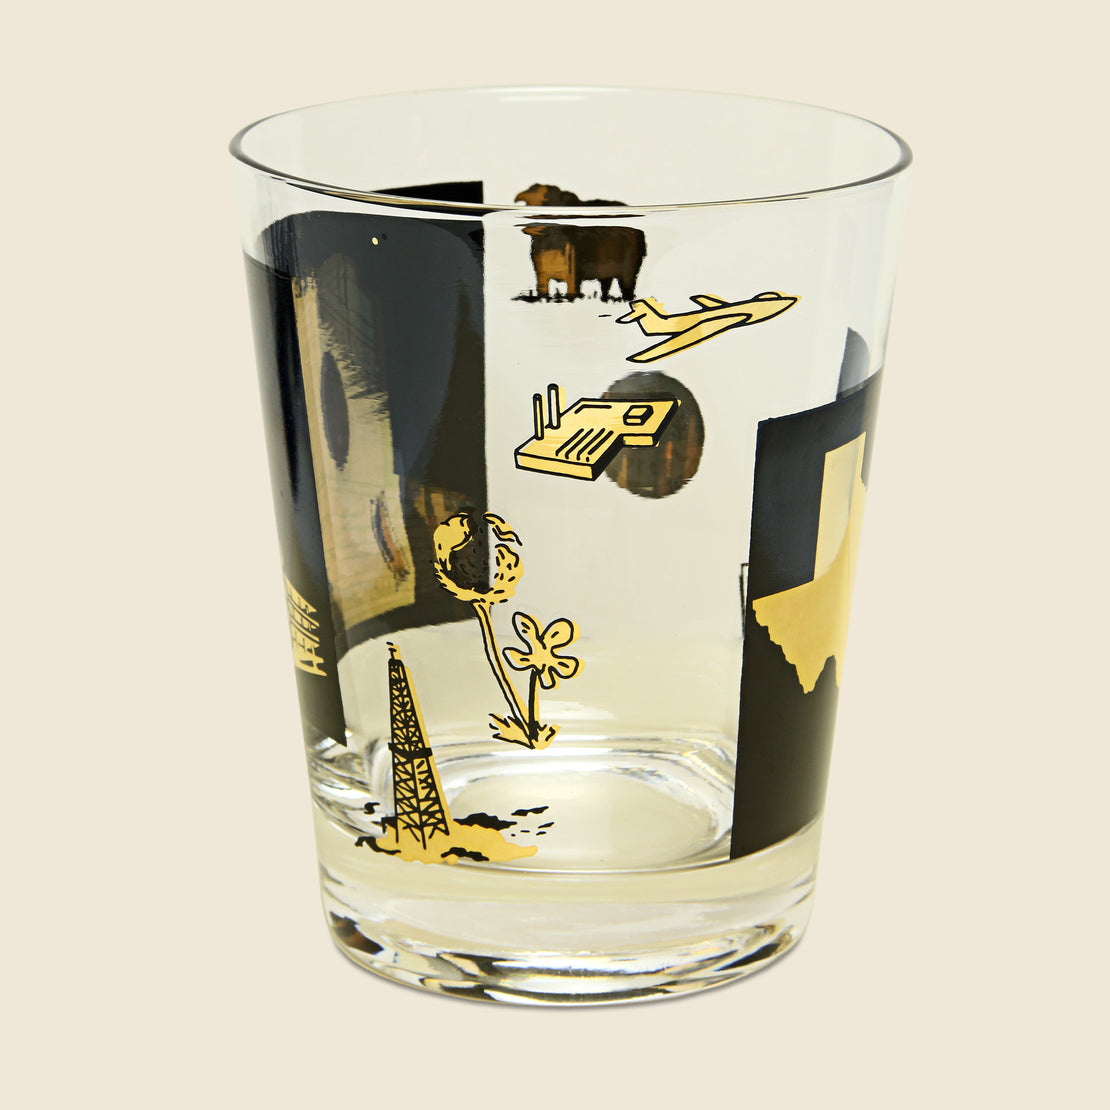 1970s Dallas Double Old Fashioned Glasses, Set of 6 - Vintage - STAG Provisions - Gift - Glassware / Barware